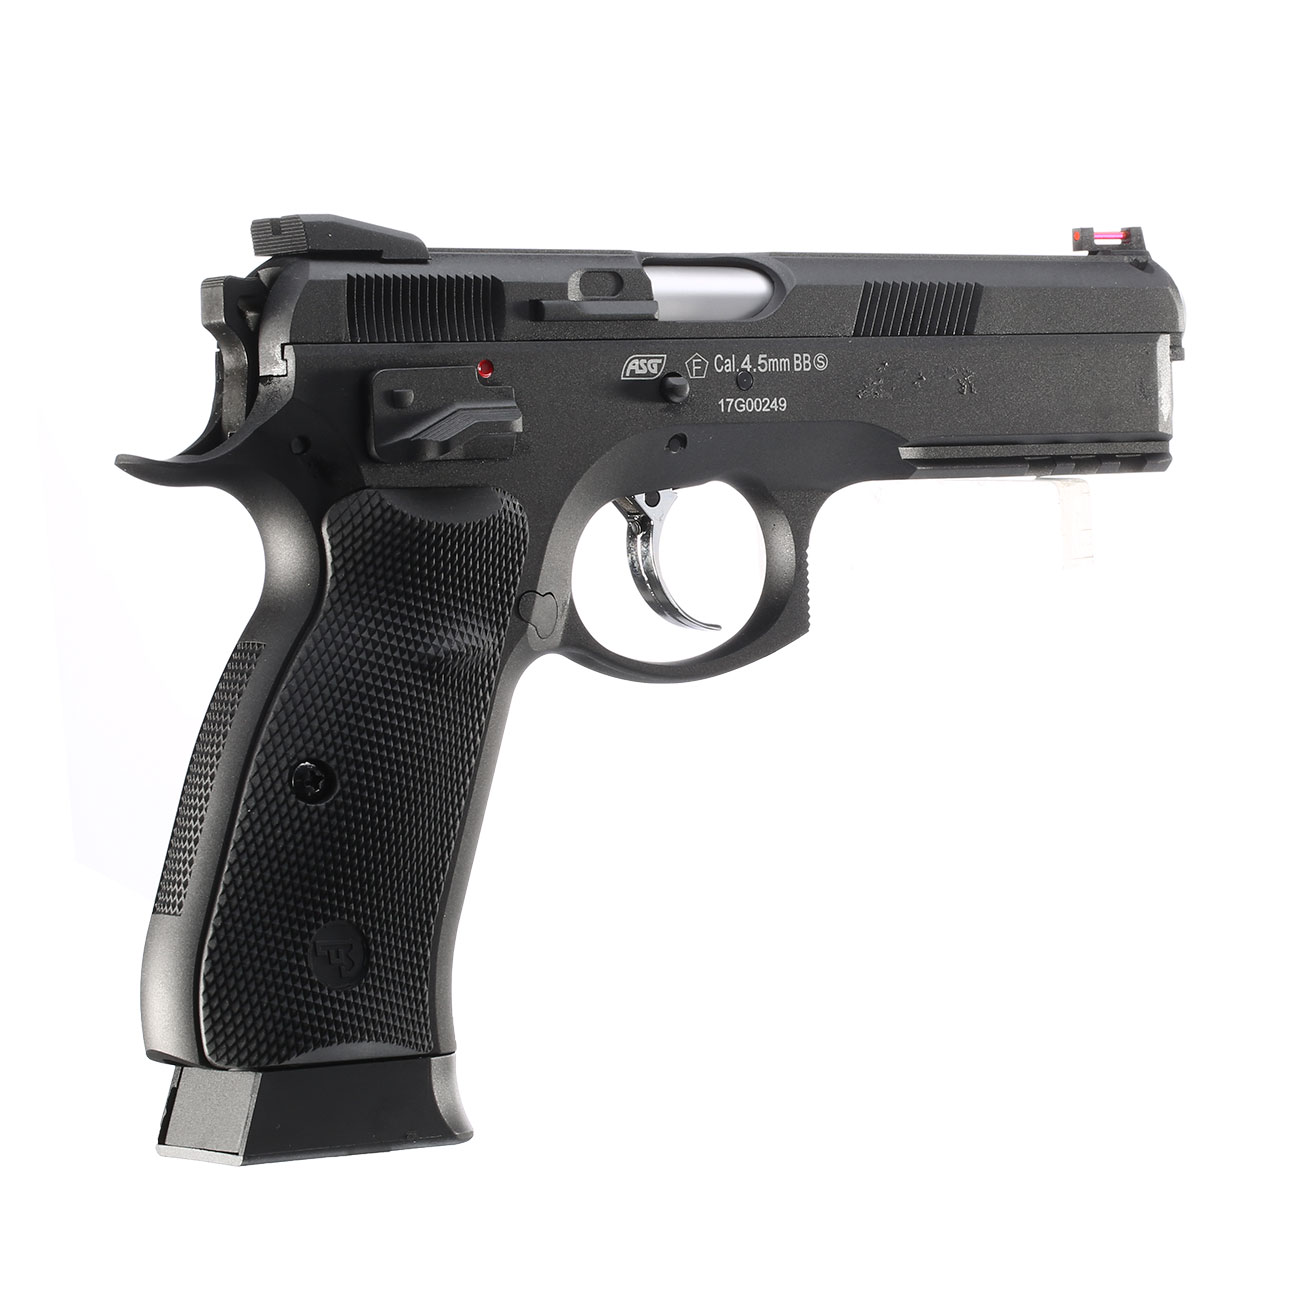 ASG CZ 75 SP-01 Shadow CO2-Luftpistole Kal. 4,5mm BB schwarz Vollmetall Blowback 4